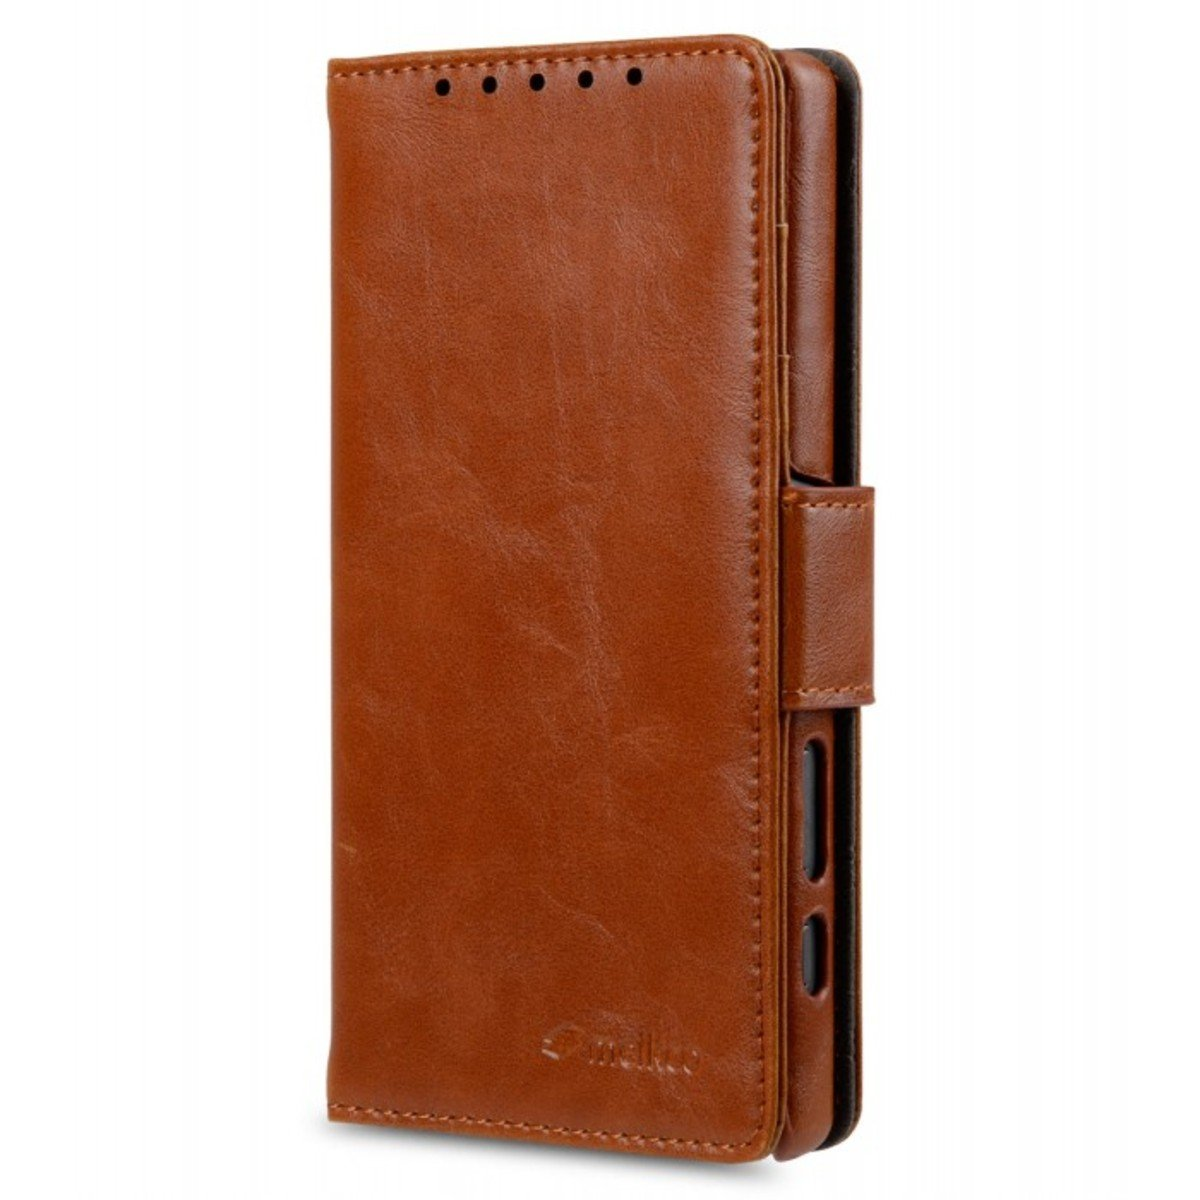 Sony Xperia Z5 Compact Wallet Book Type 人造皮手機套 - 黑色